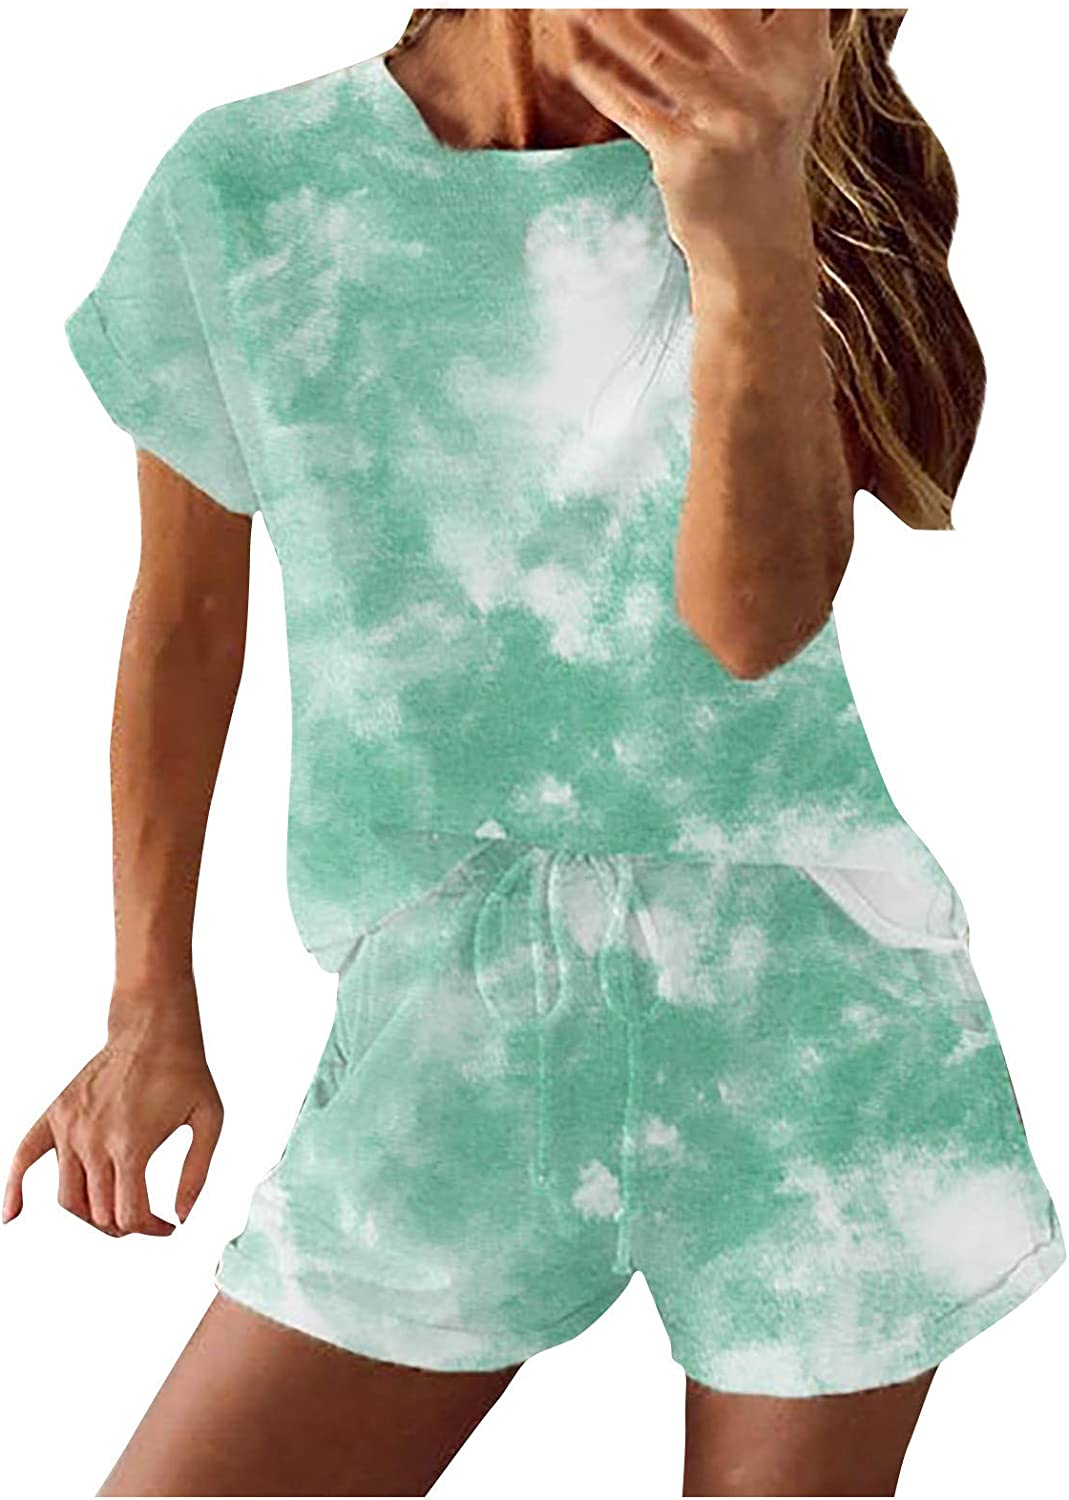 XINXX Women's 2 Piece Outfit Sweatsuit Short Sleeve Round Neck Flore Floral Print Tracksuit Casual Loose Tshirts Sets